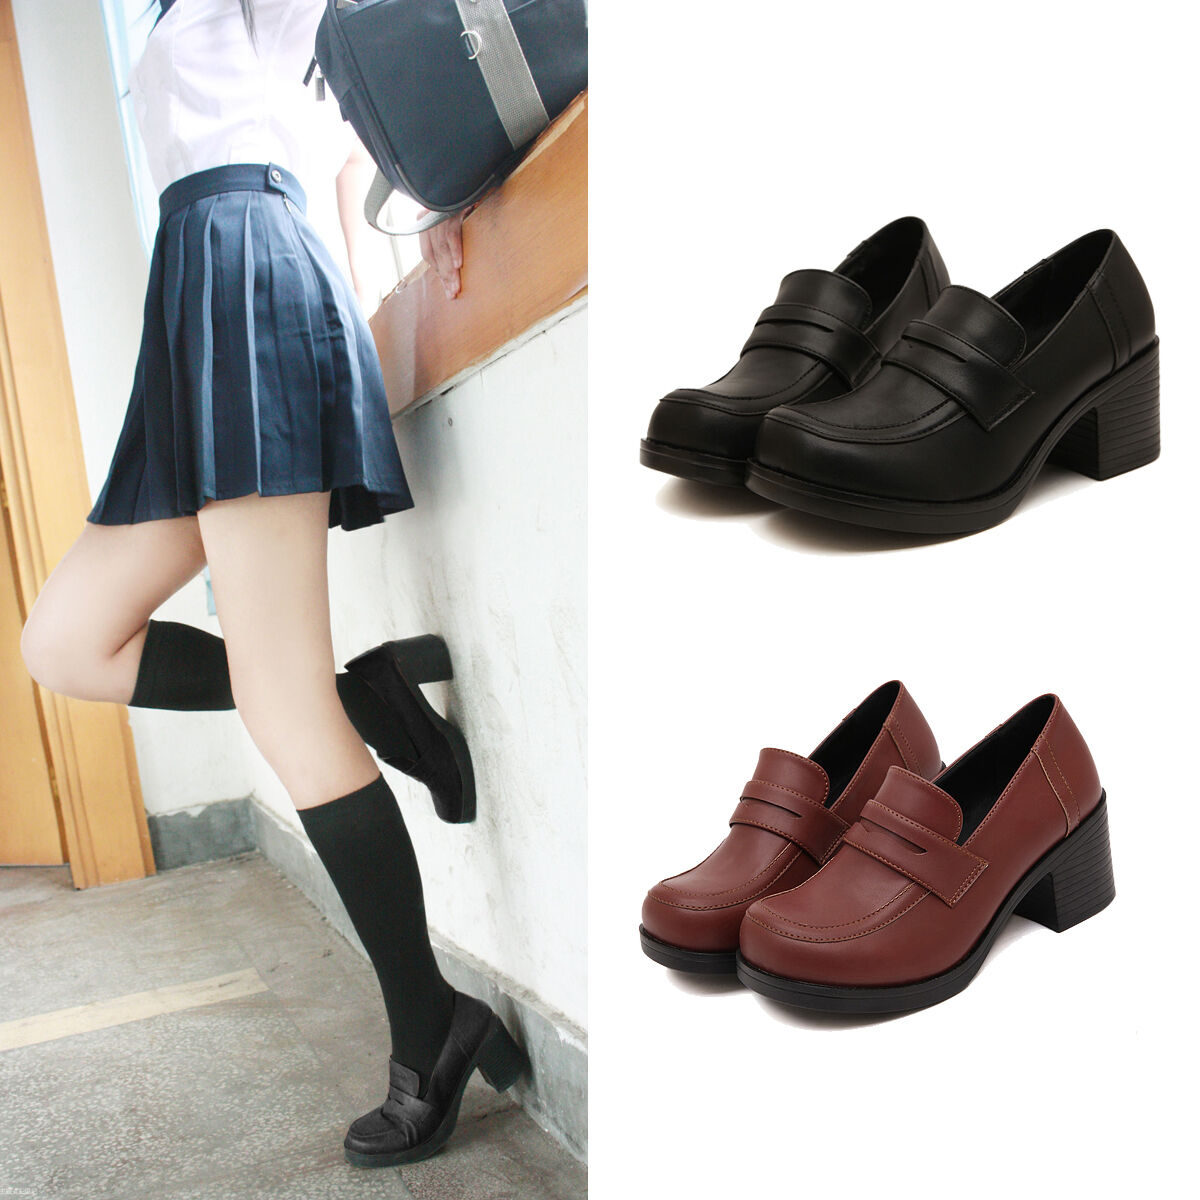 JK Uniform Womens Japanese School shoes Student Leather Block High Heel Cosplay